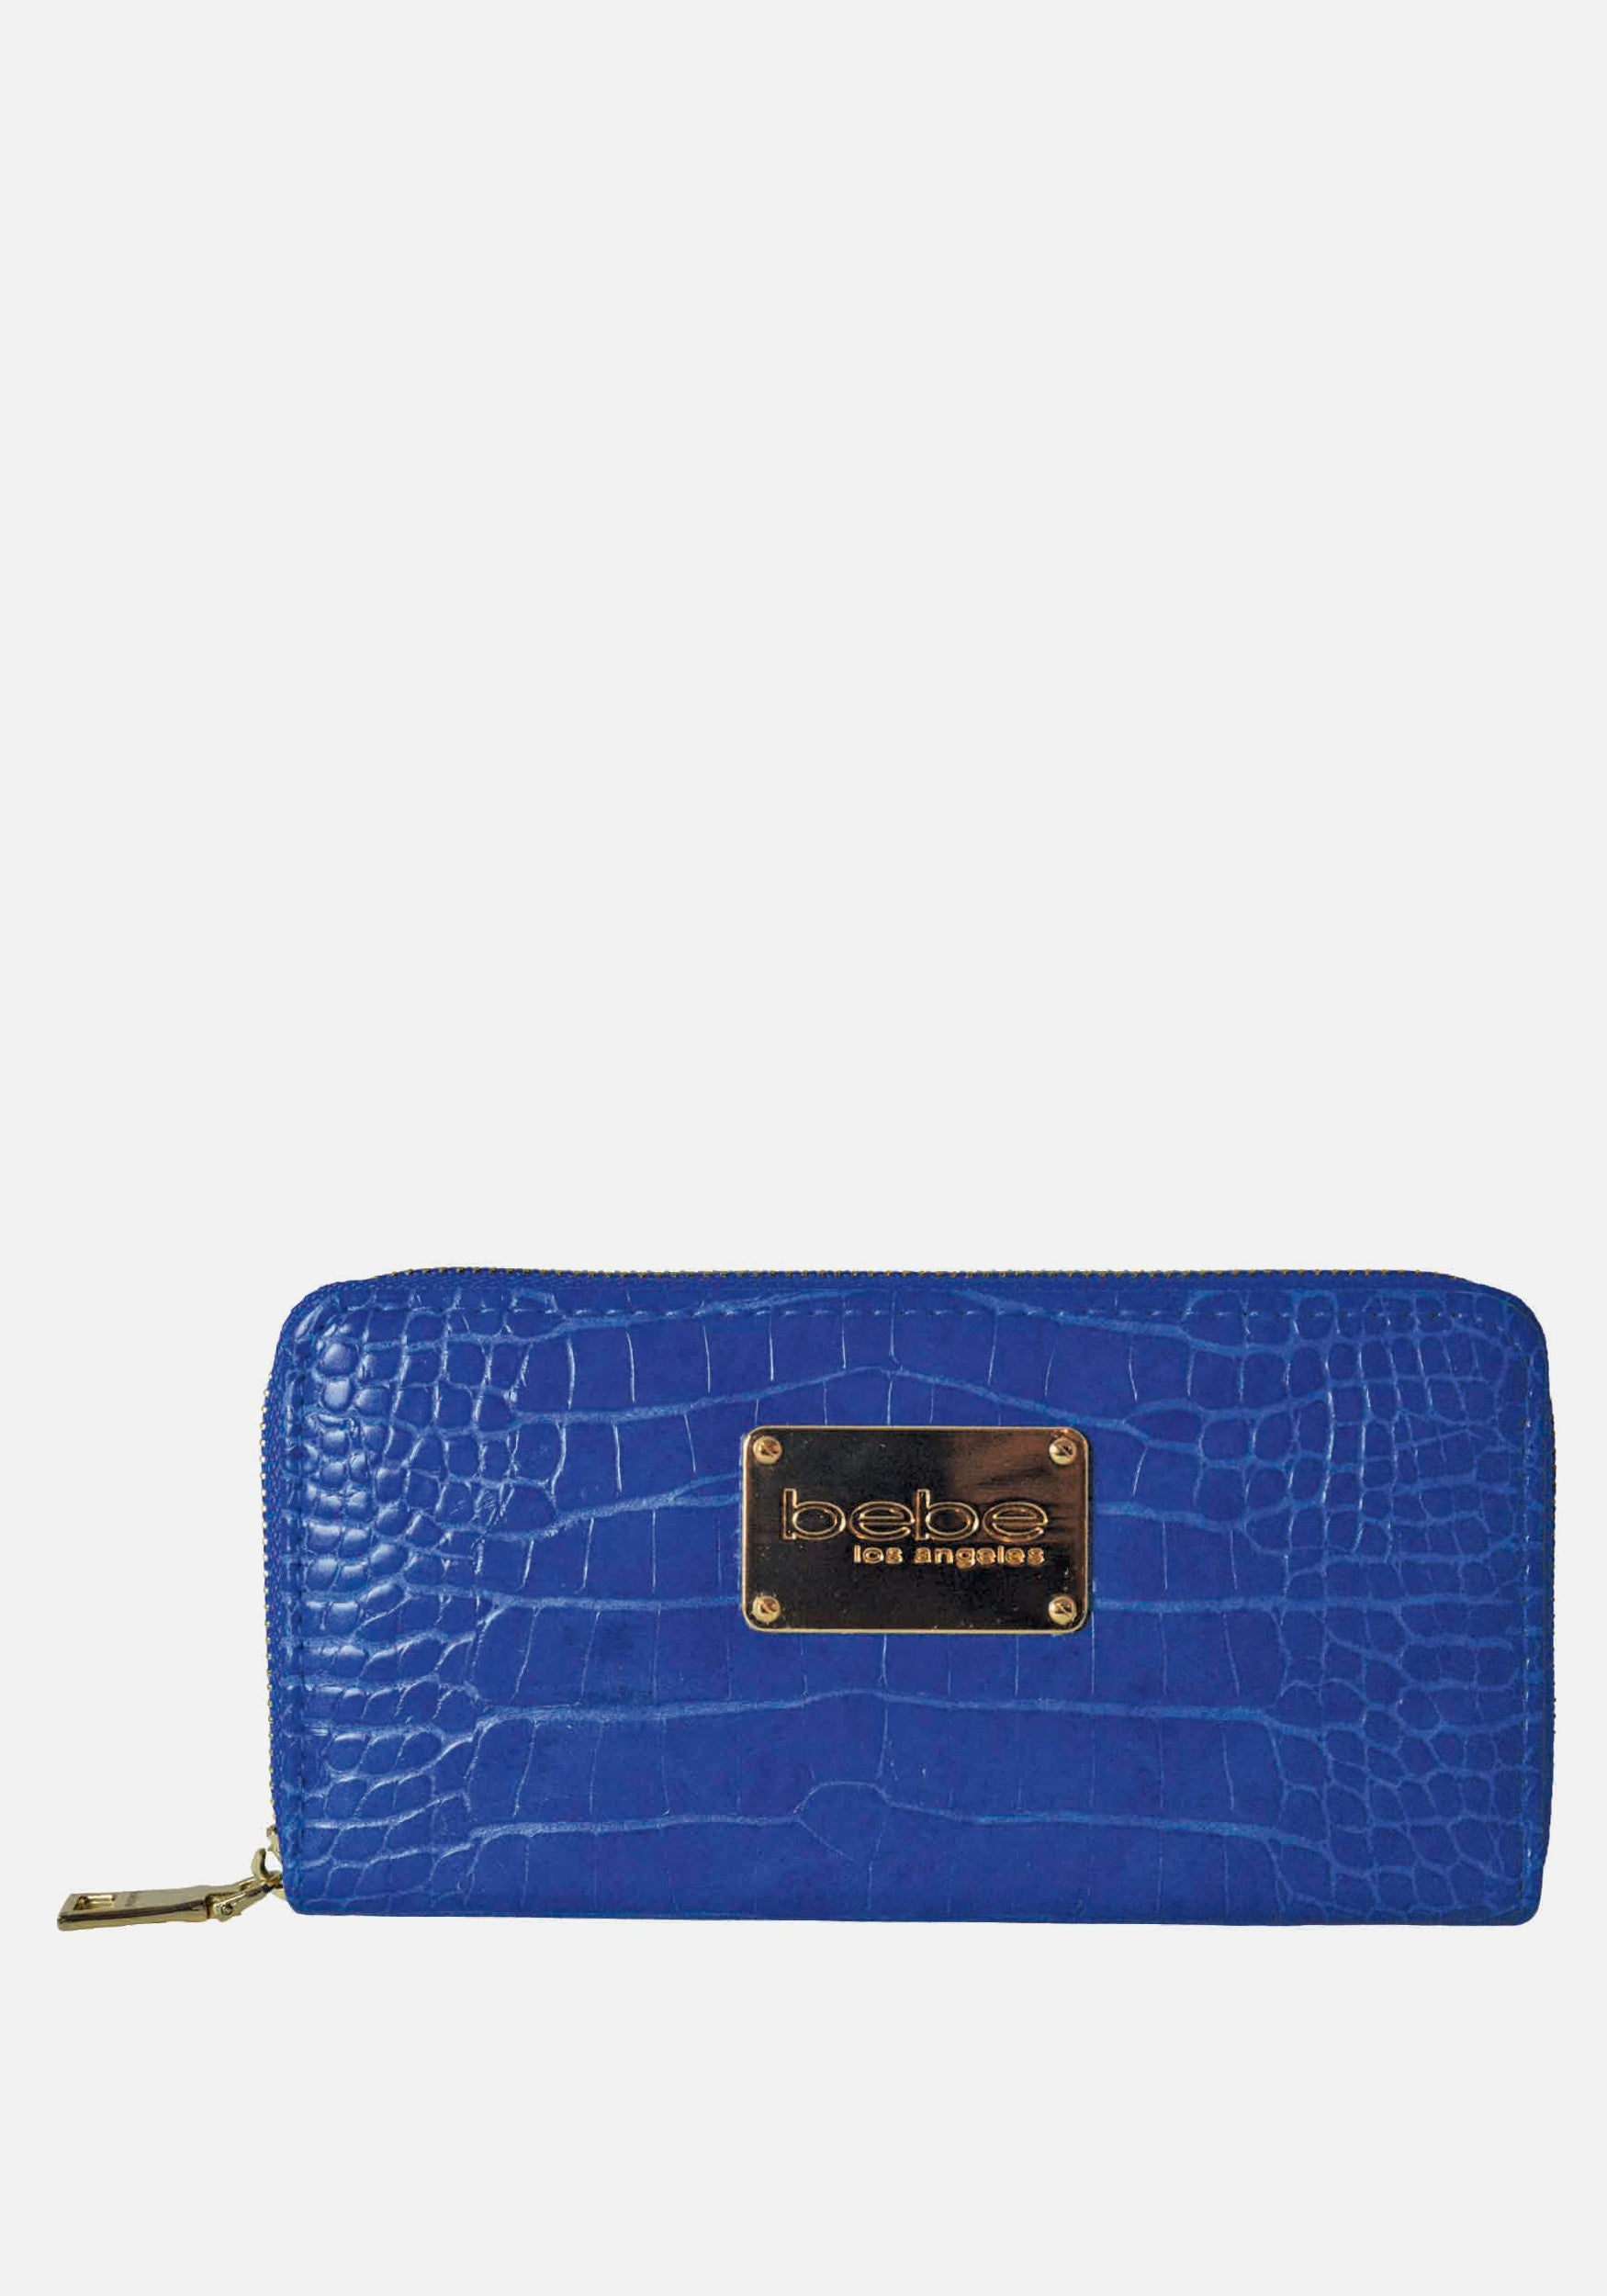 Bebe Women's Natalia Croco Wallet in Blue Polyester